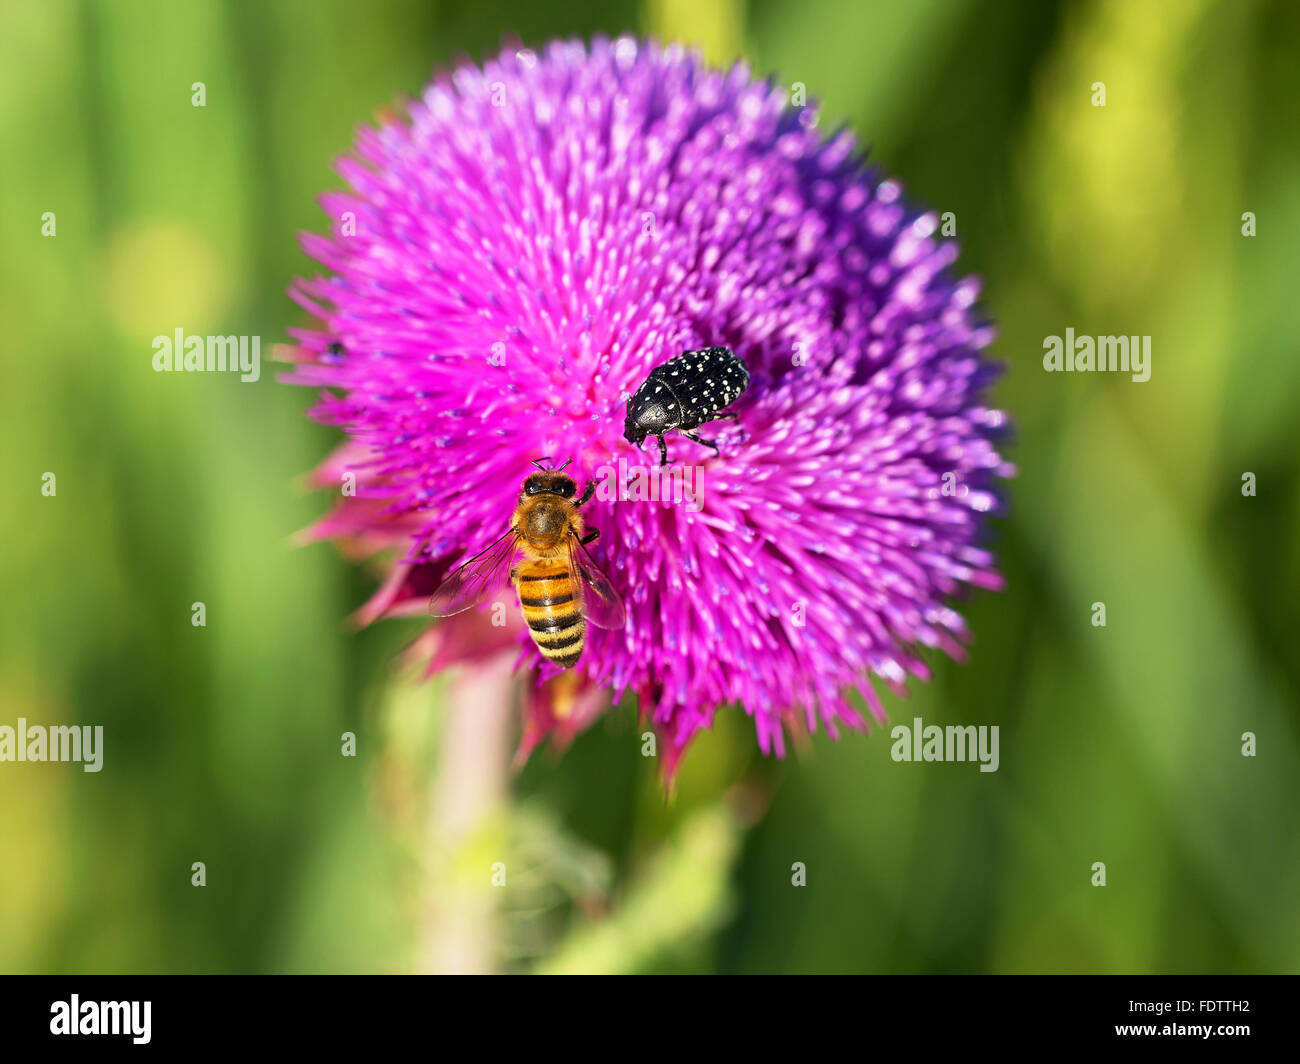 Beautiful Bright Flower Thistle Bees Pollinate The Flowers Collect